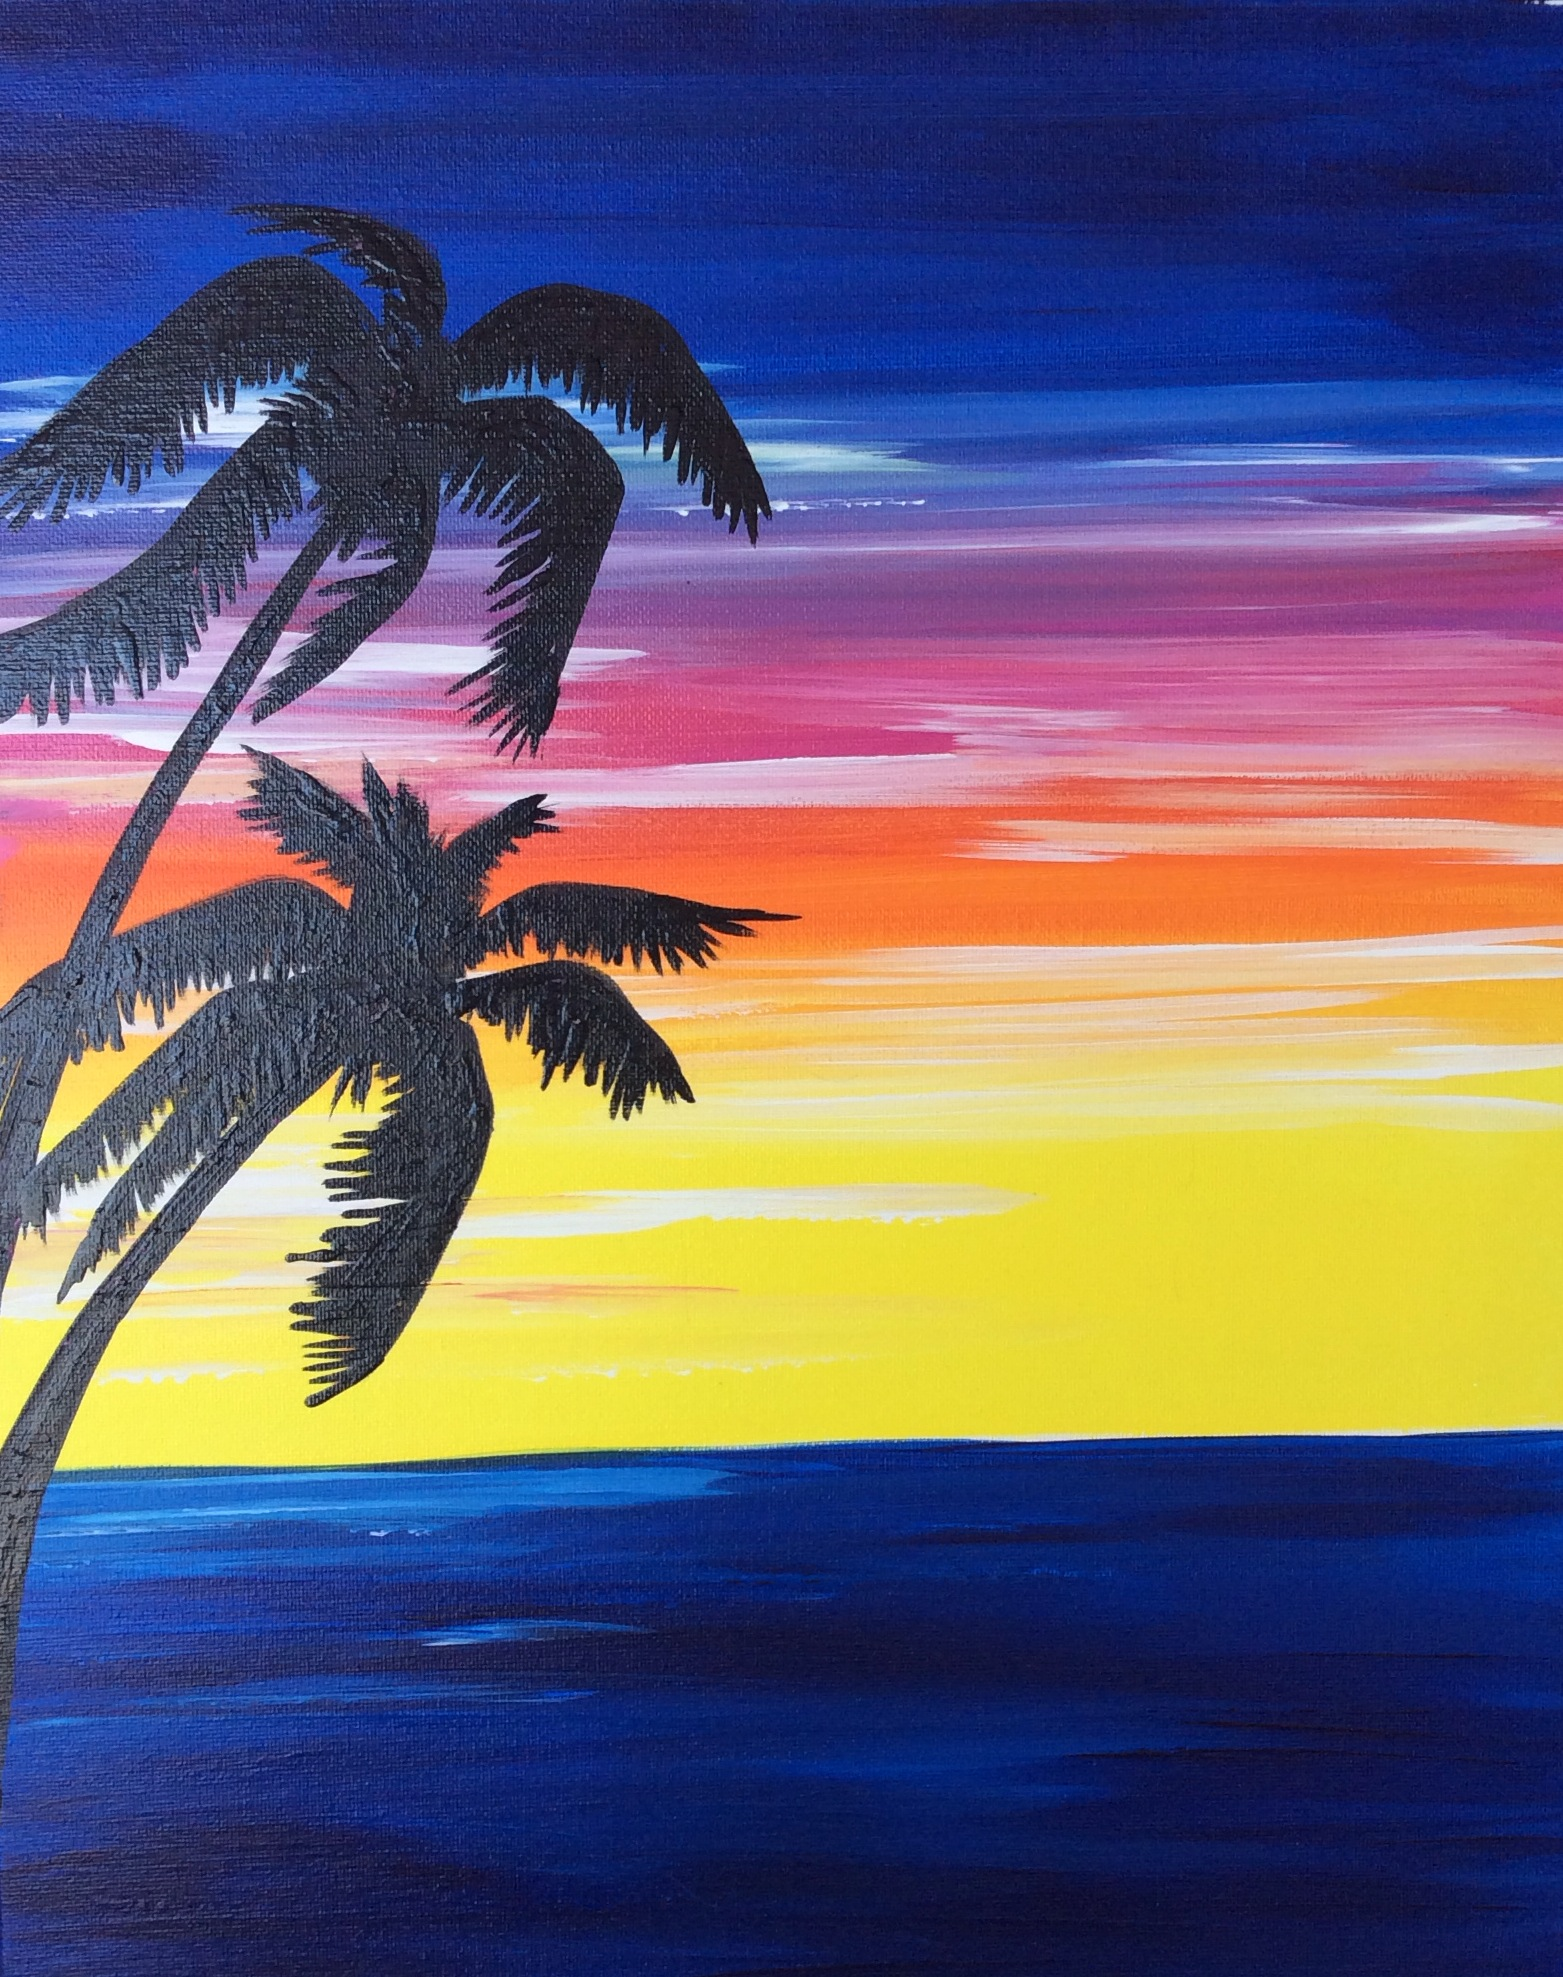 Two Palms Silhouette - 2 Hours